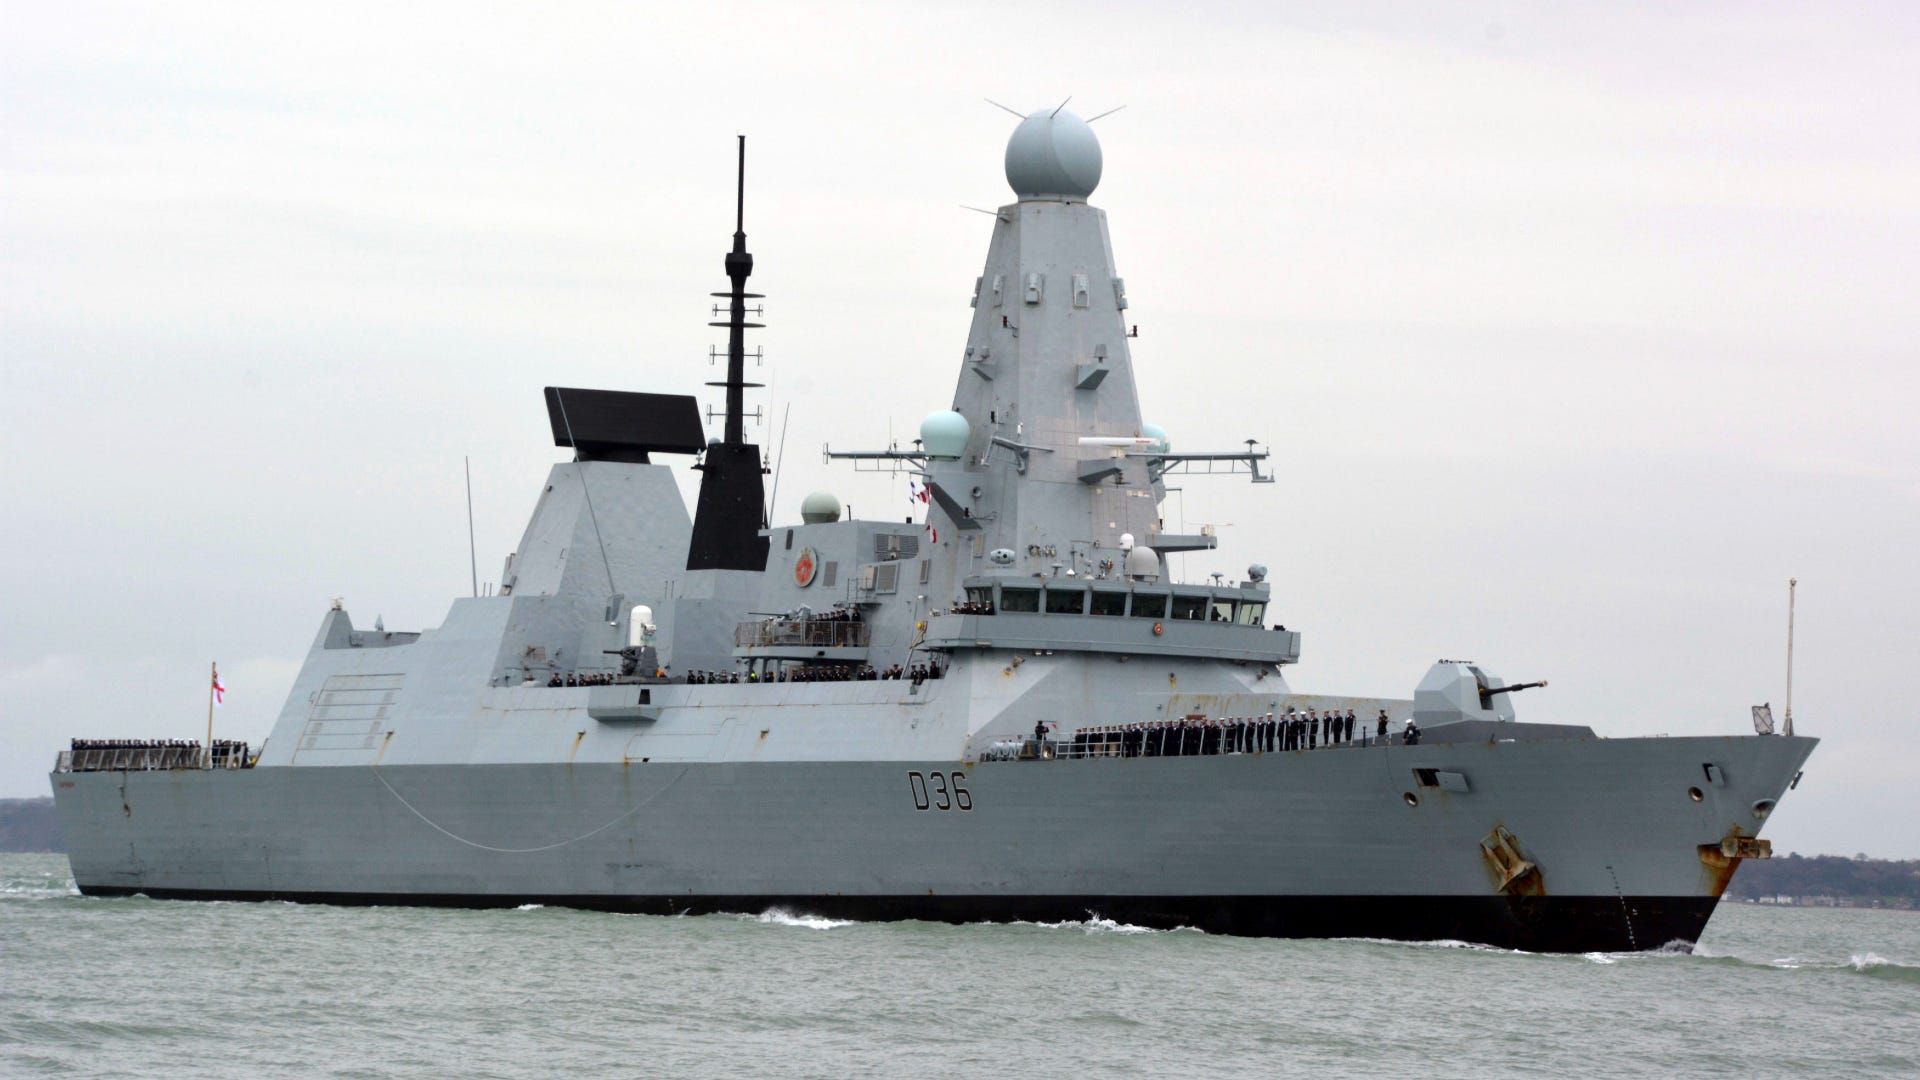 Russia says it may fire to hit intruding warships next time after incident with British ship